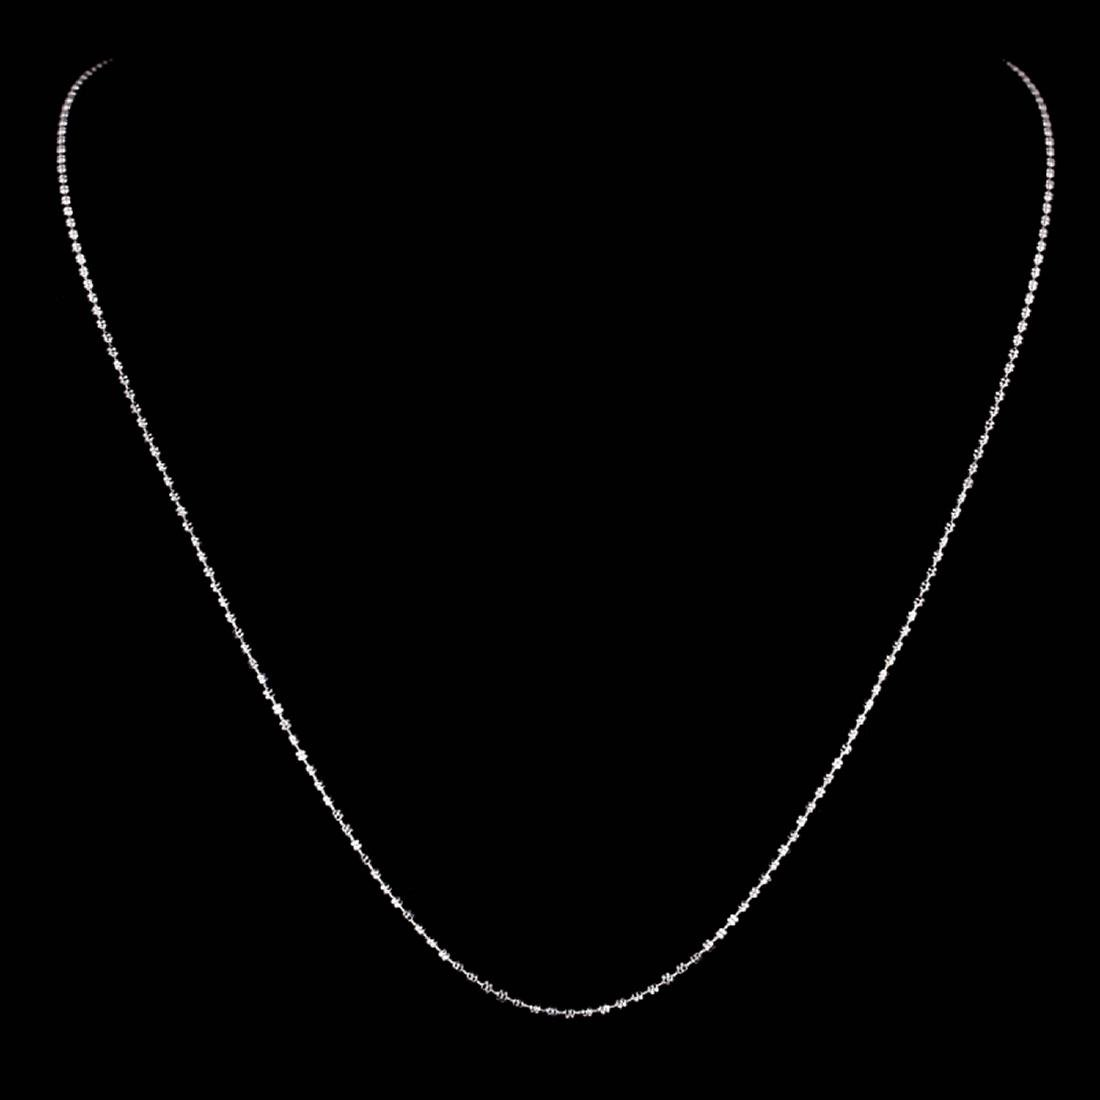 *Fine Jewelry 14KT White Gold, 3.6GR, 18'' Double Bead